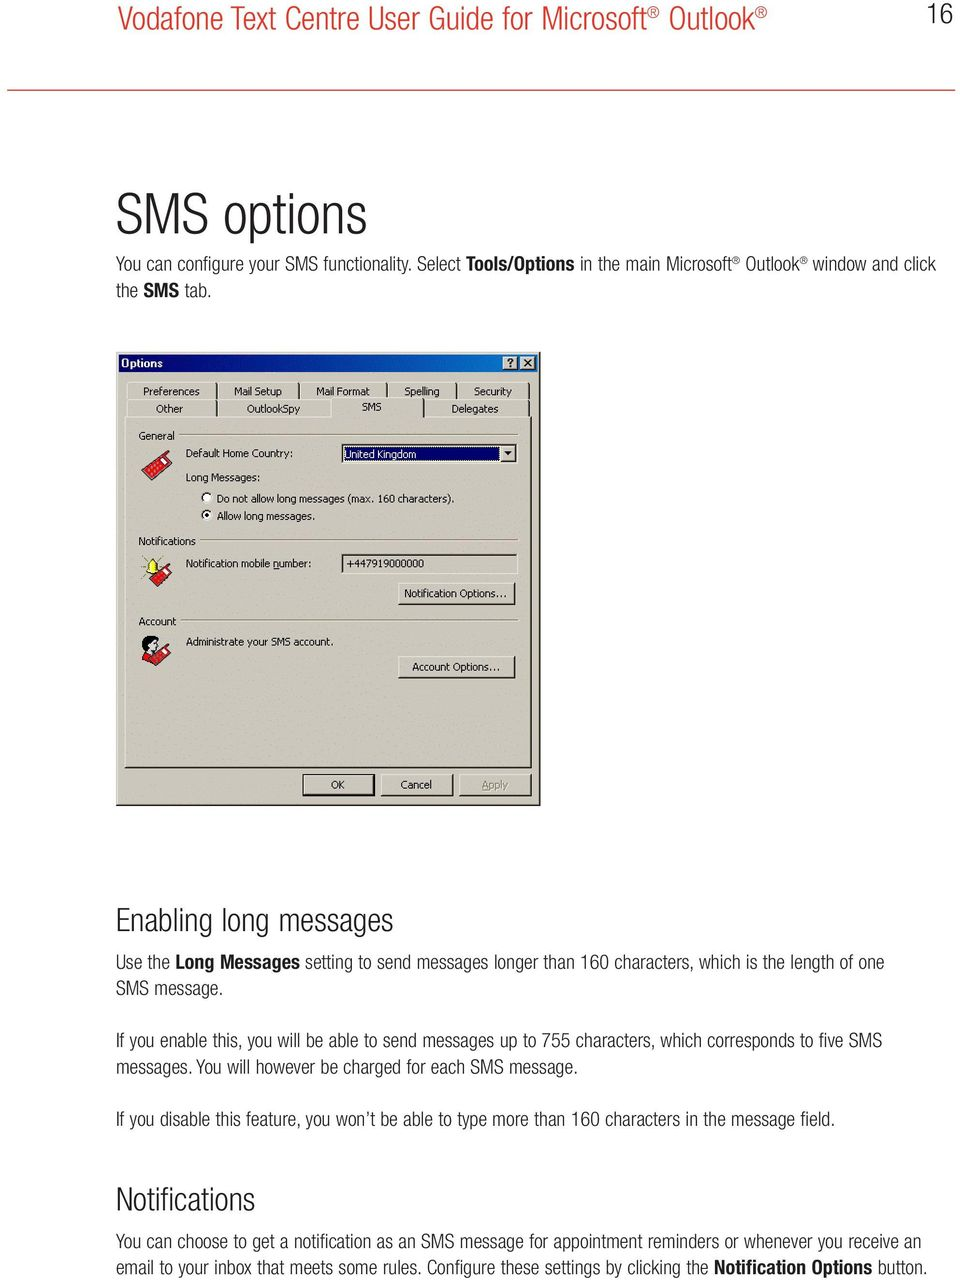 If you enable this, you will be able to send messages up to 755 characters, which corresponds to five SMS messages. You will however be charged for each SMS message.